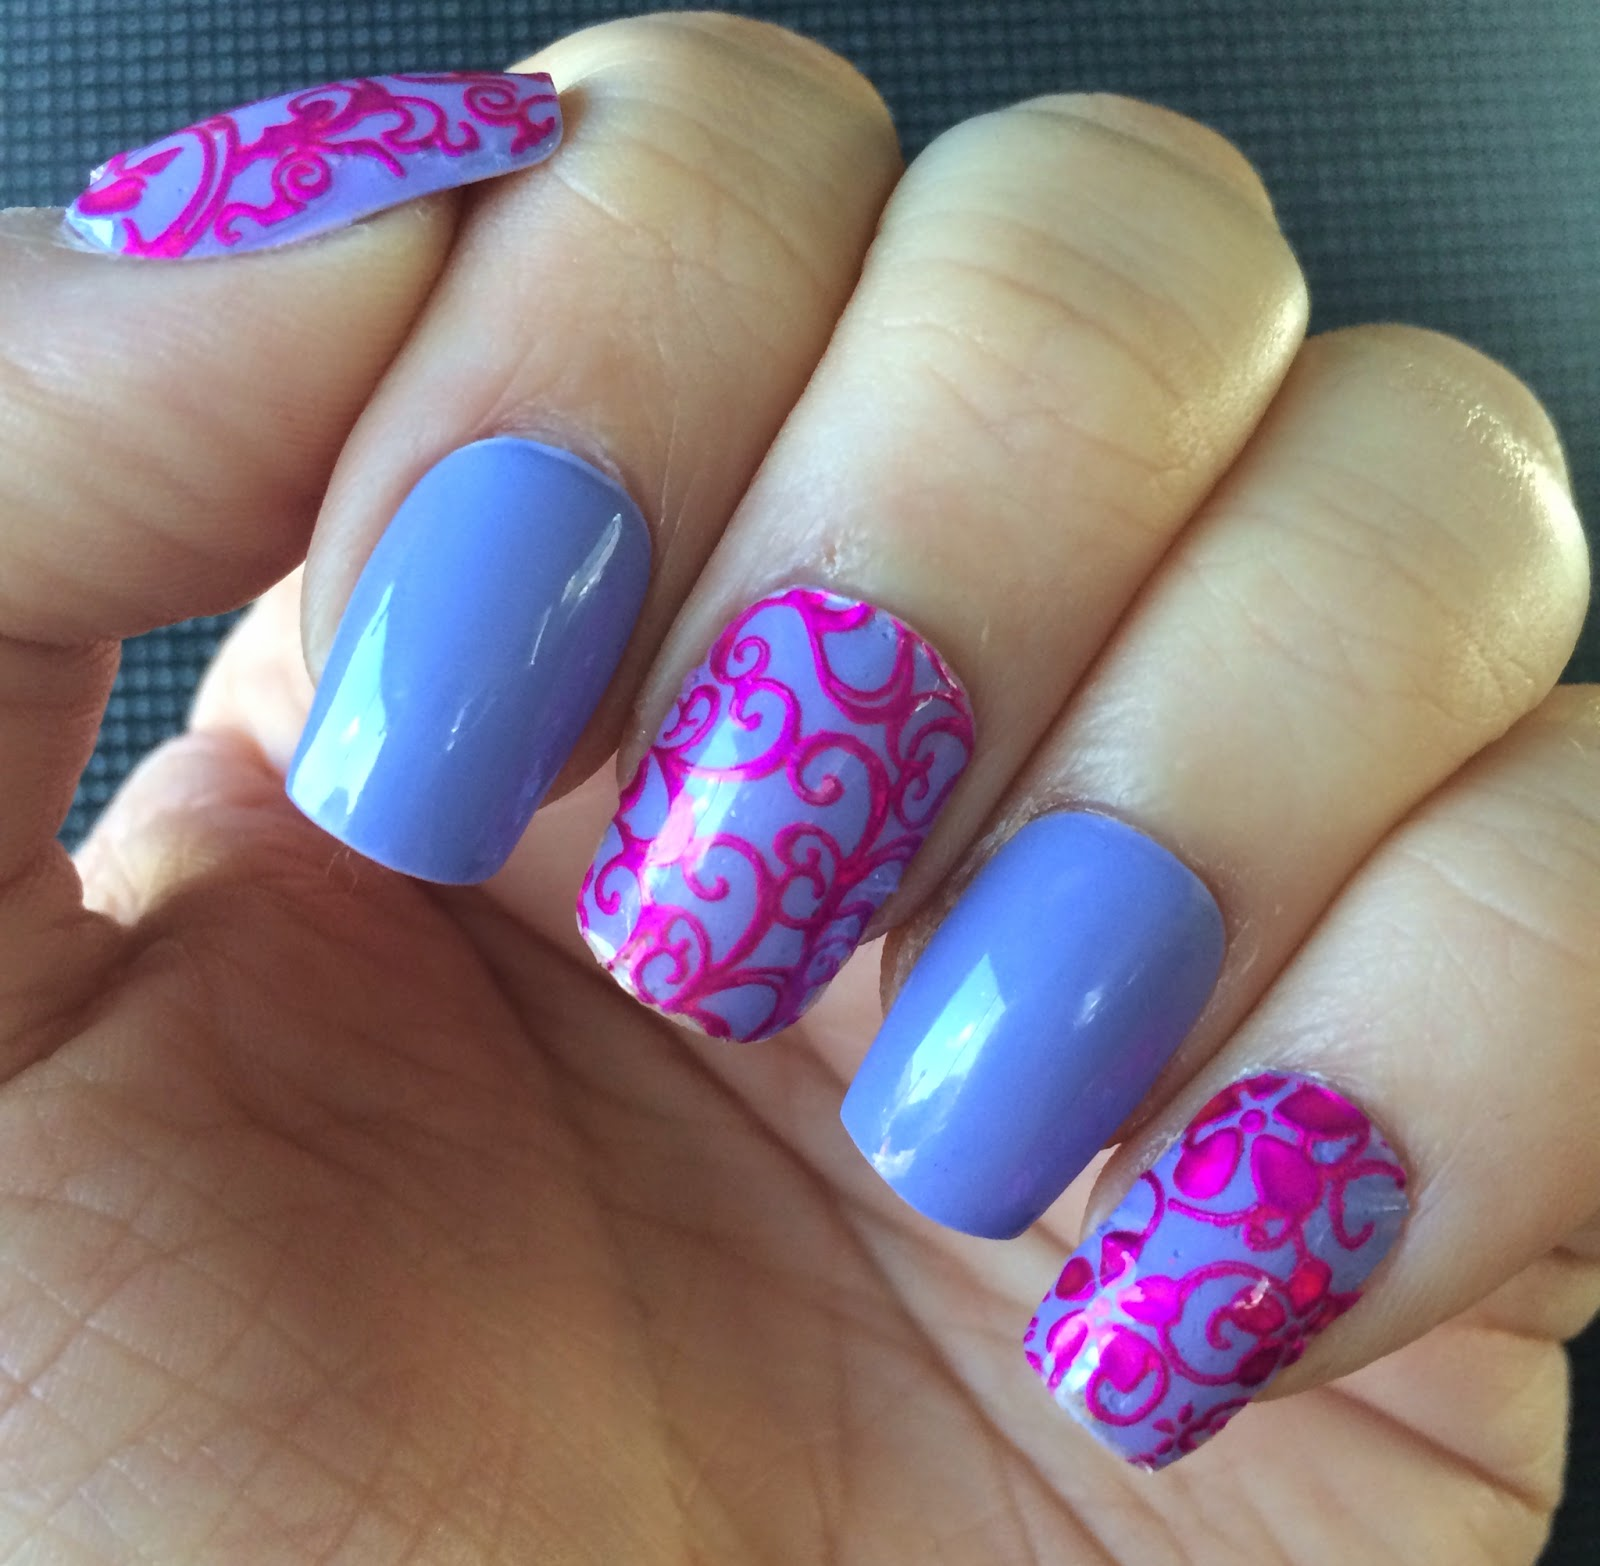 Born Pretty Store Floral Lace Nail Stickers Review